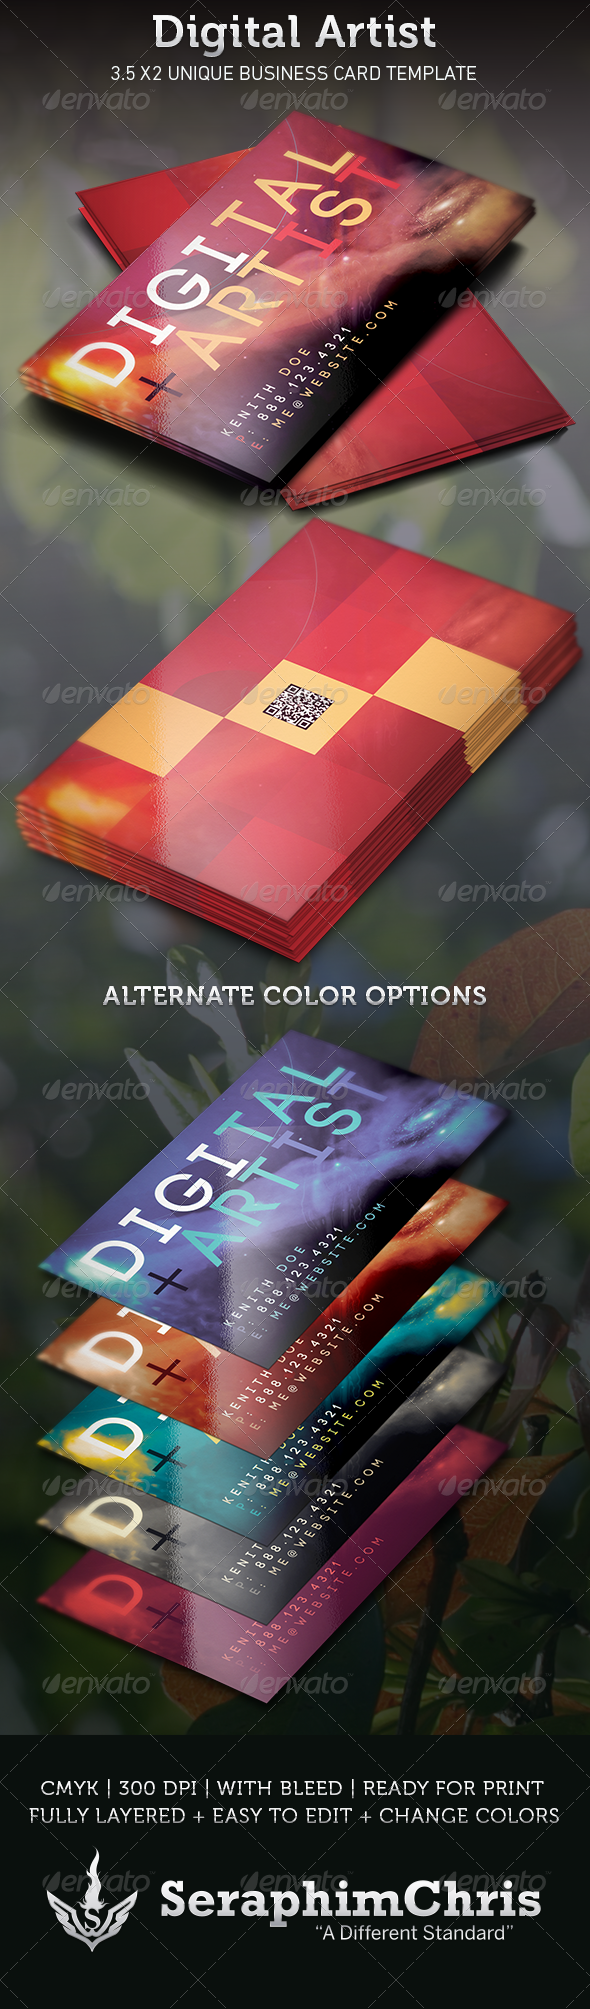 GraphicRiver Digital Artist Business Card Template 3669084